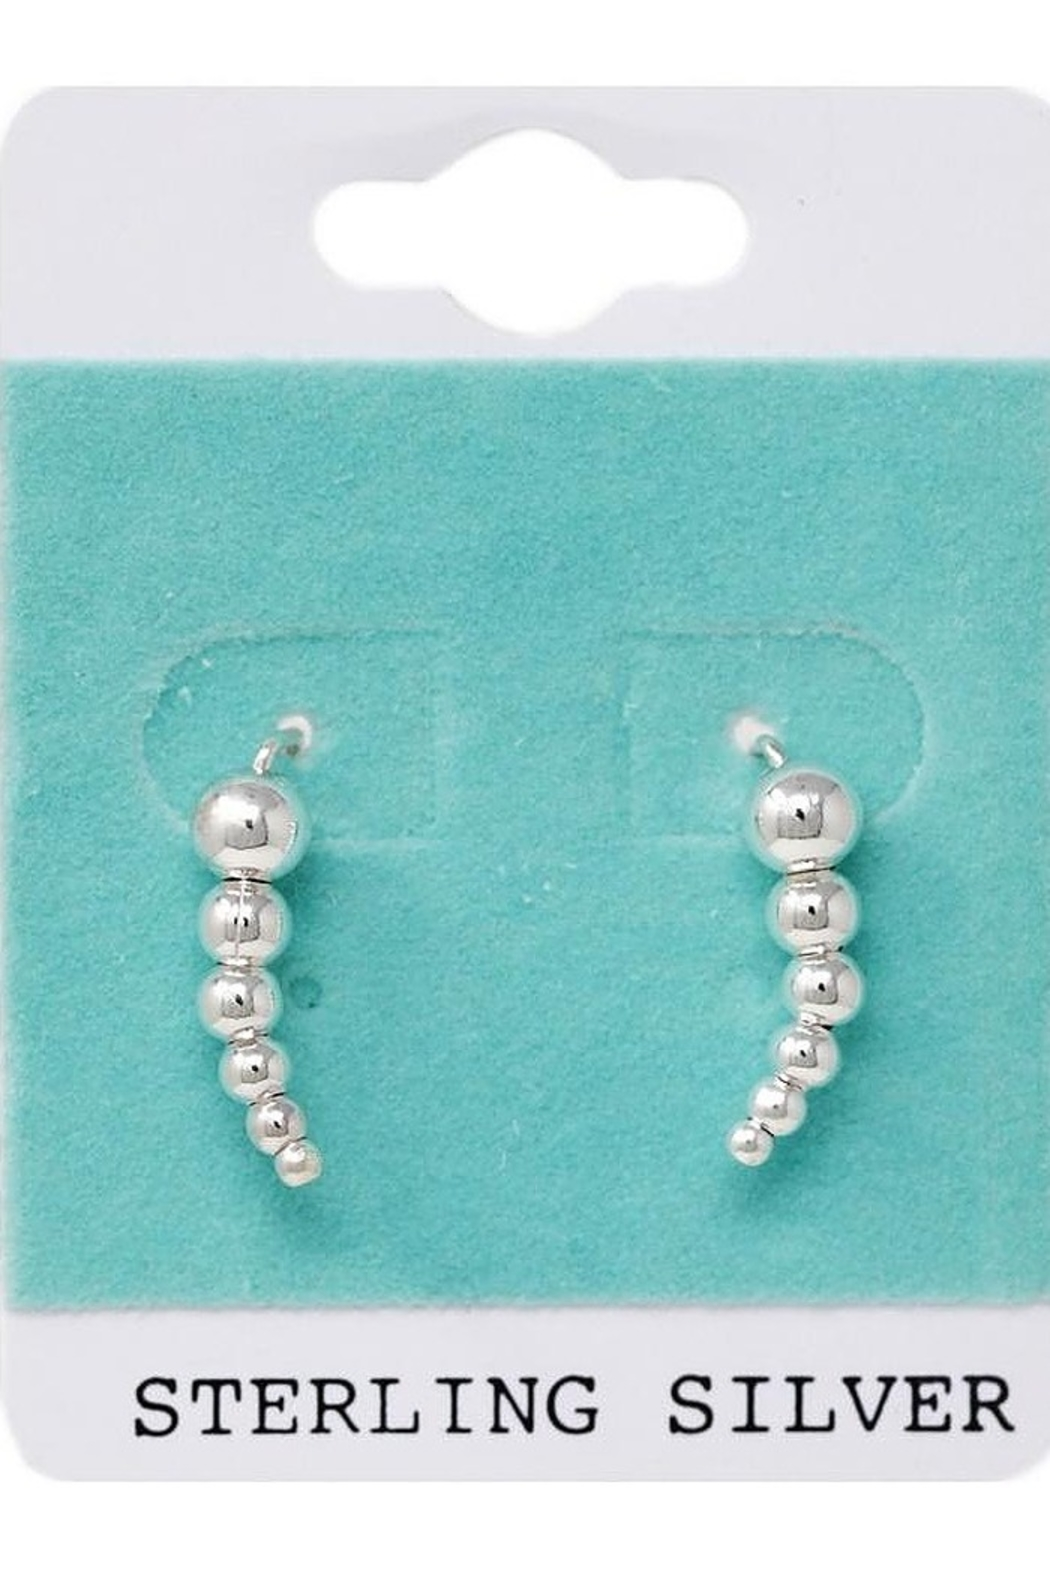 US Jewelry House Sterling Silver Earrings - Main Image